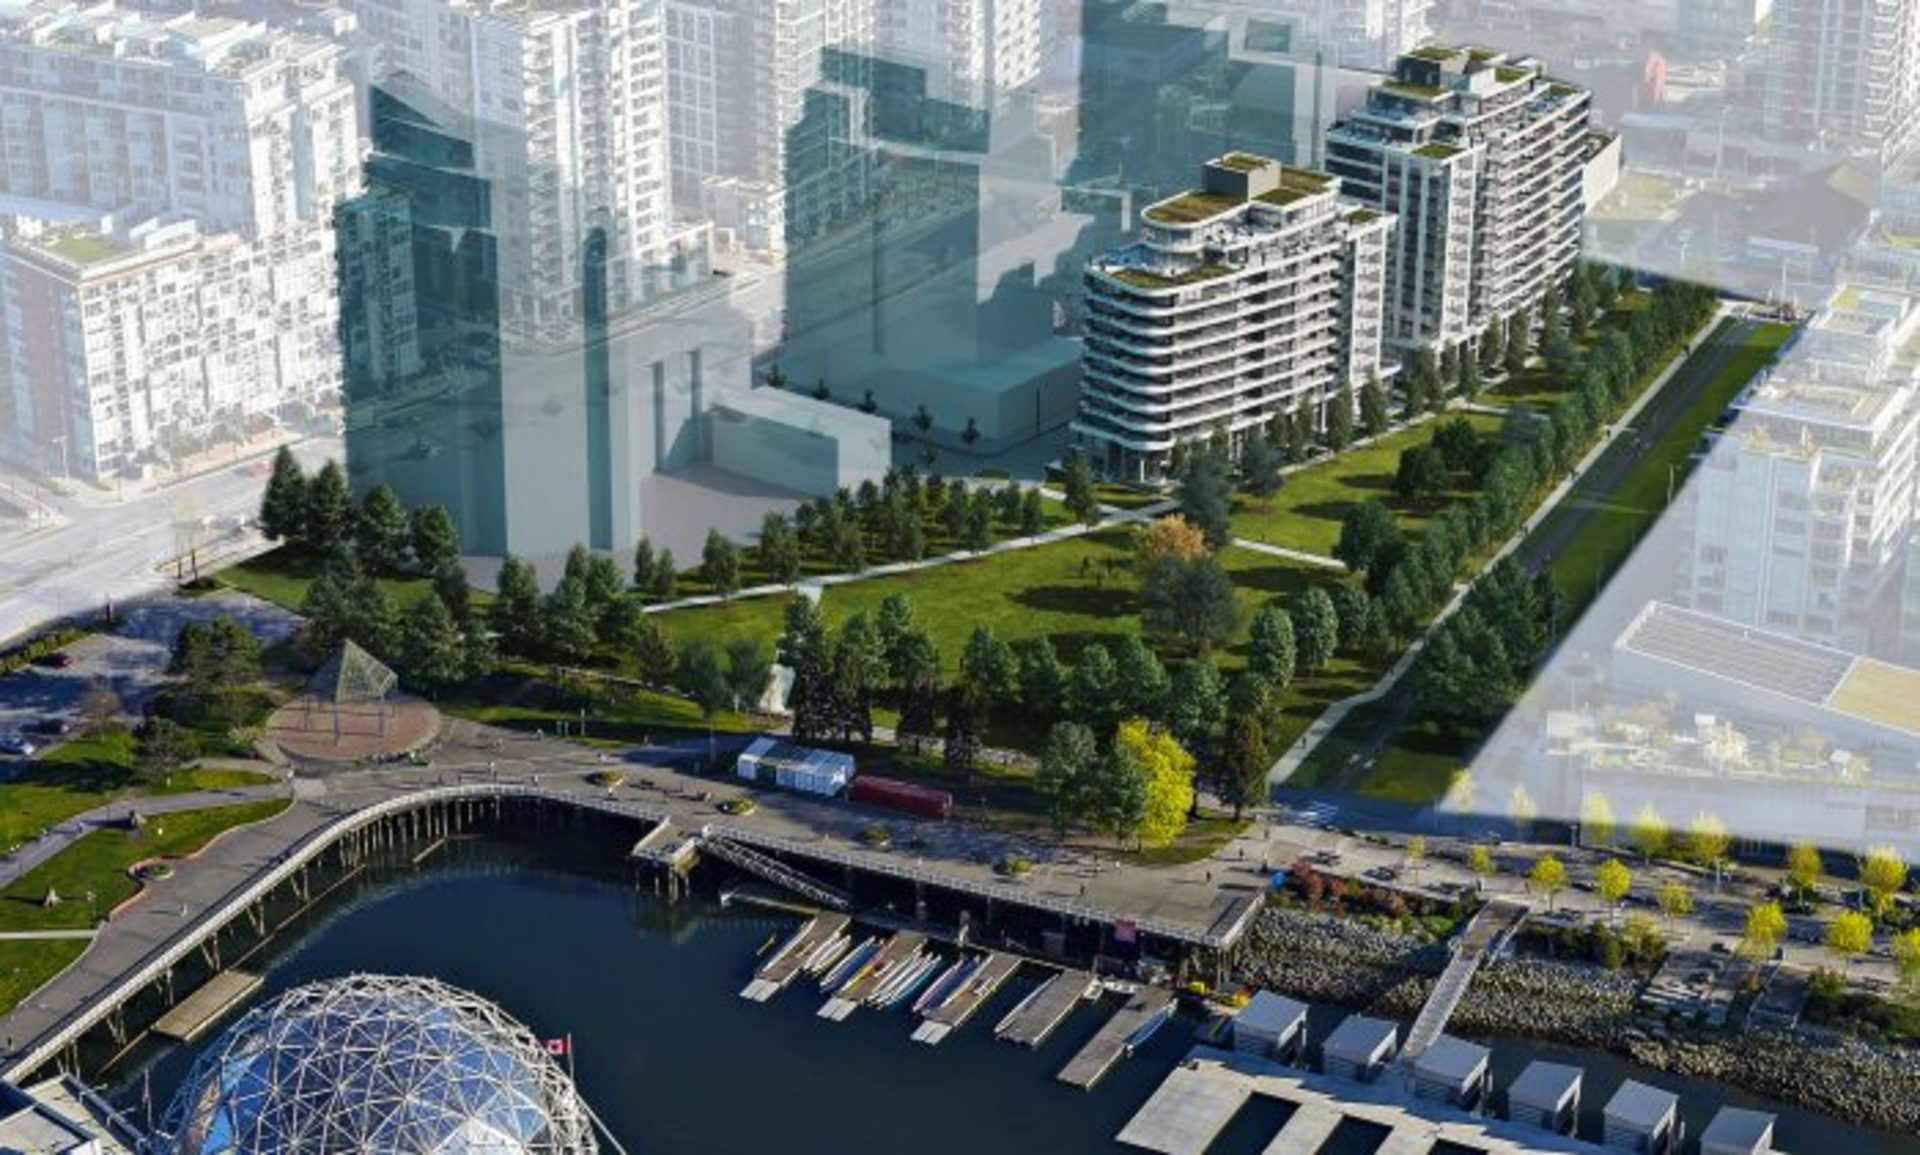 creek_aerial_test-700x421 at 1551 Quebec Street, Vancouver West